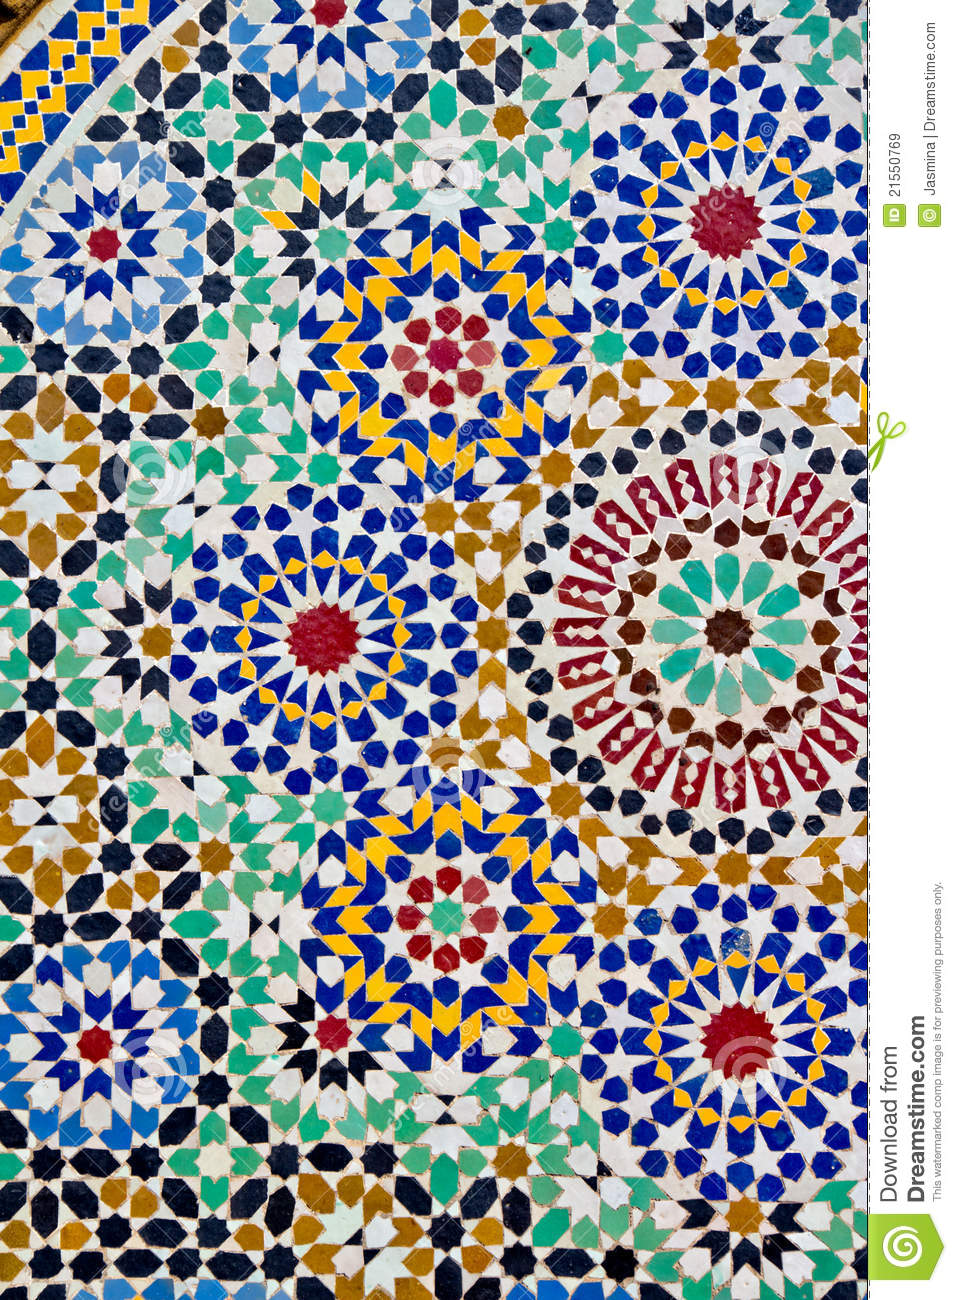 Mosaic table fes stock image image of table africa for Table mosaic xl 6 chaises encastrables